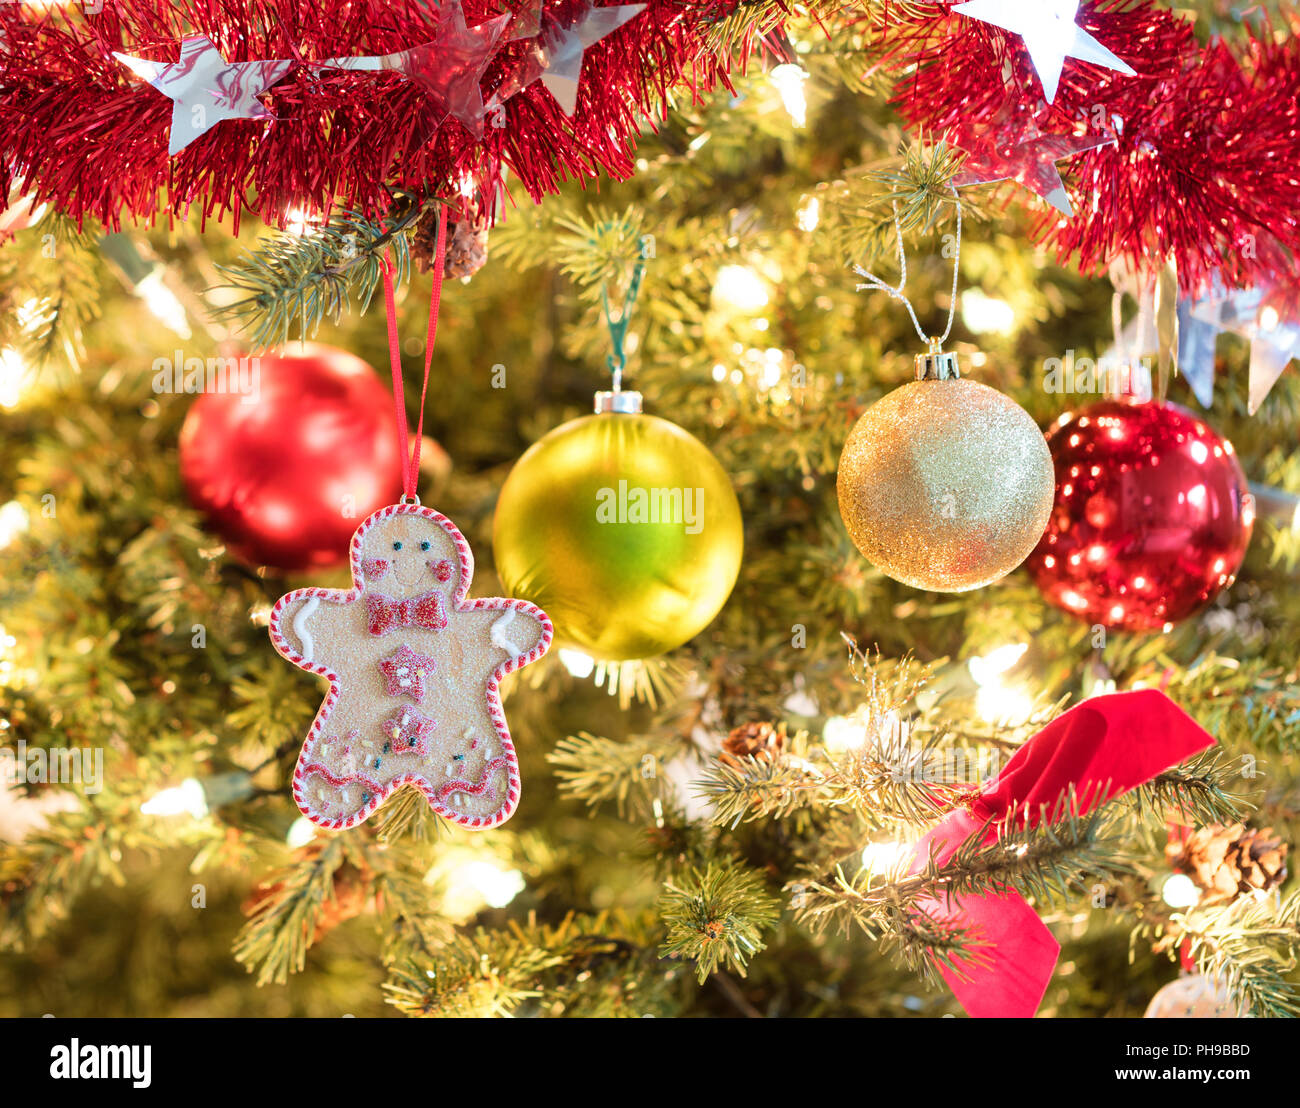 holiday cookie hanging from fully decorated christmas tree stock image - Fully Decorated Christmas Tree